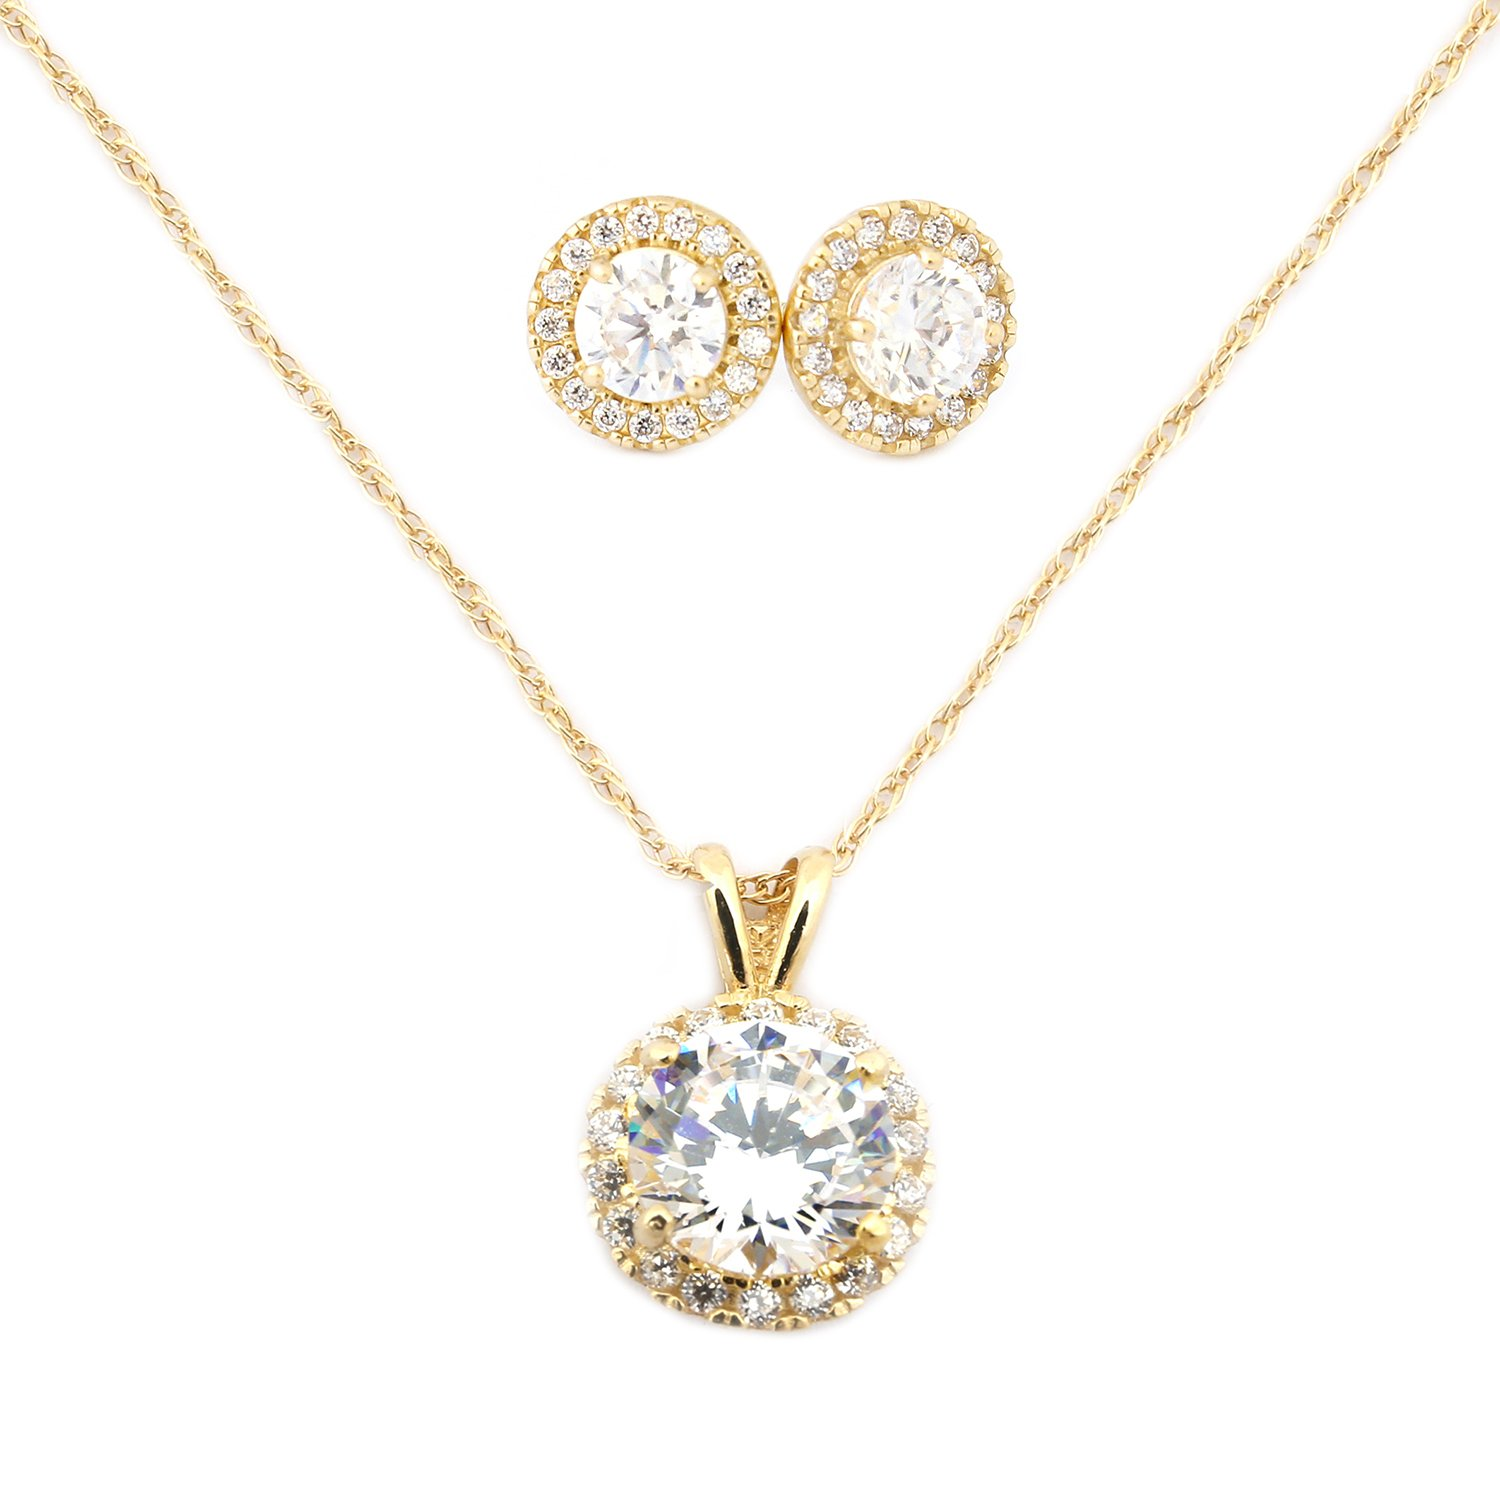 14k Yellow Gold Cubic Zirconia Halo Necklace and Earrings Set - 18''